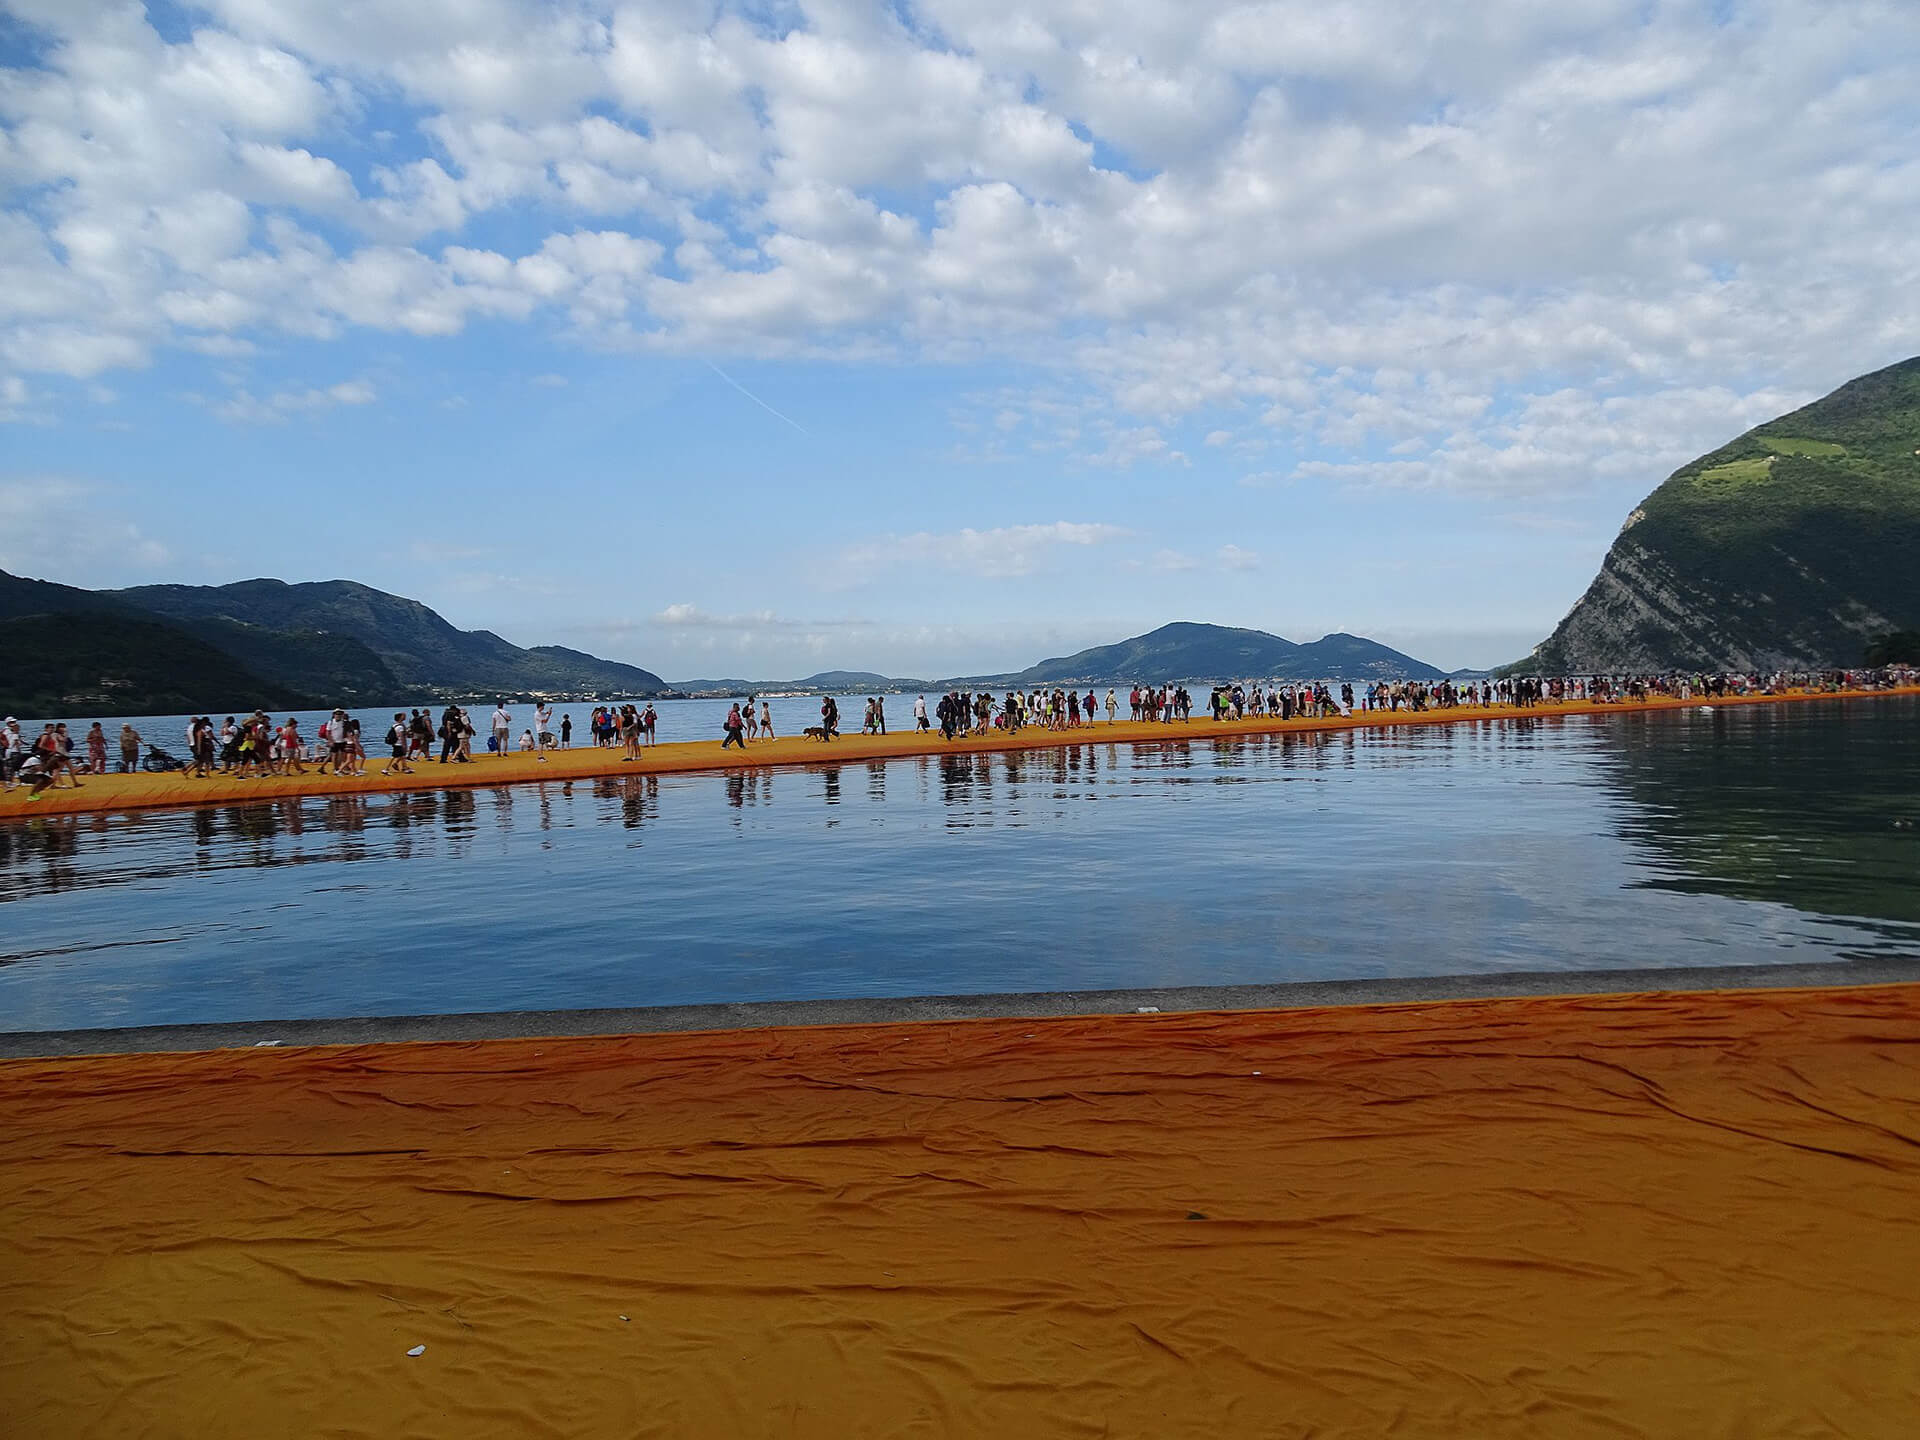 The Floating Piers by Christo and Jeanne-Claude | The Floating Piers in Italy | Christo and Jeanne-Claude| STIRworld